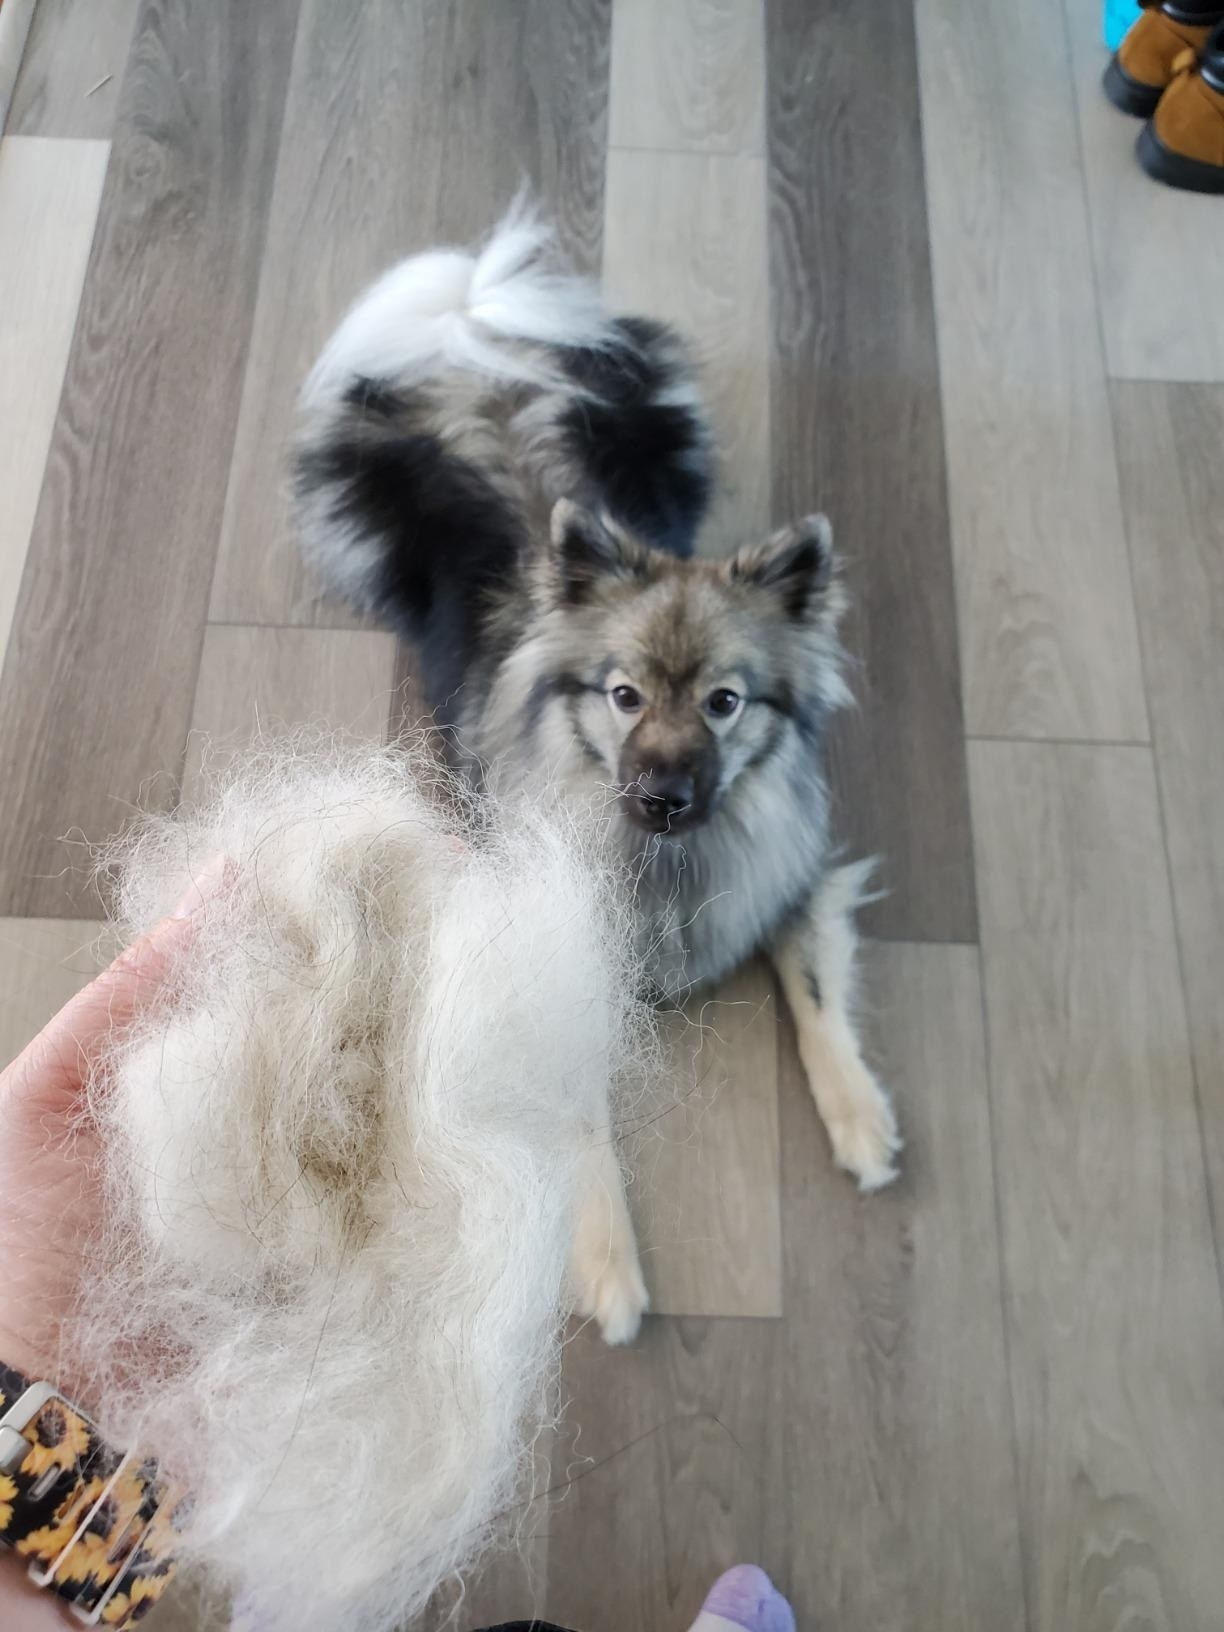 Reviewer photo of their dog and a large pile of fur they brushed out